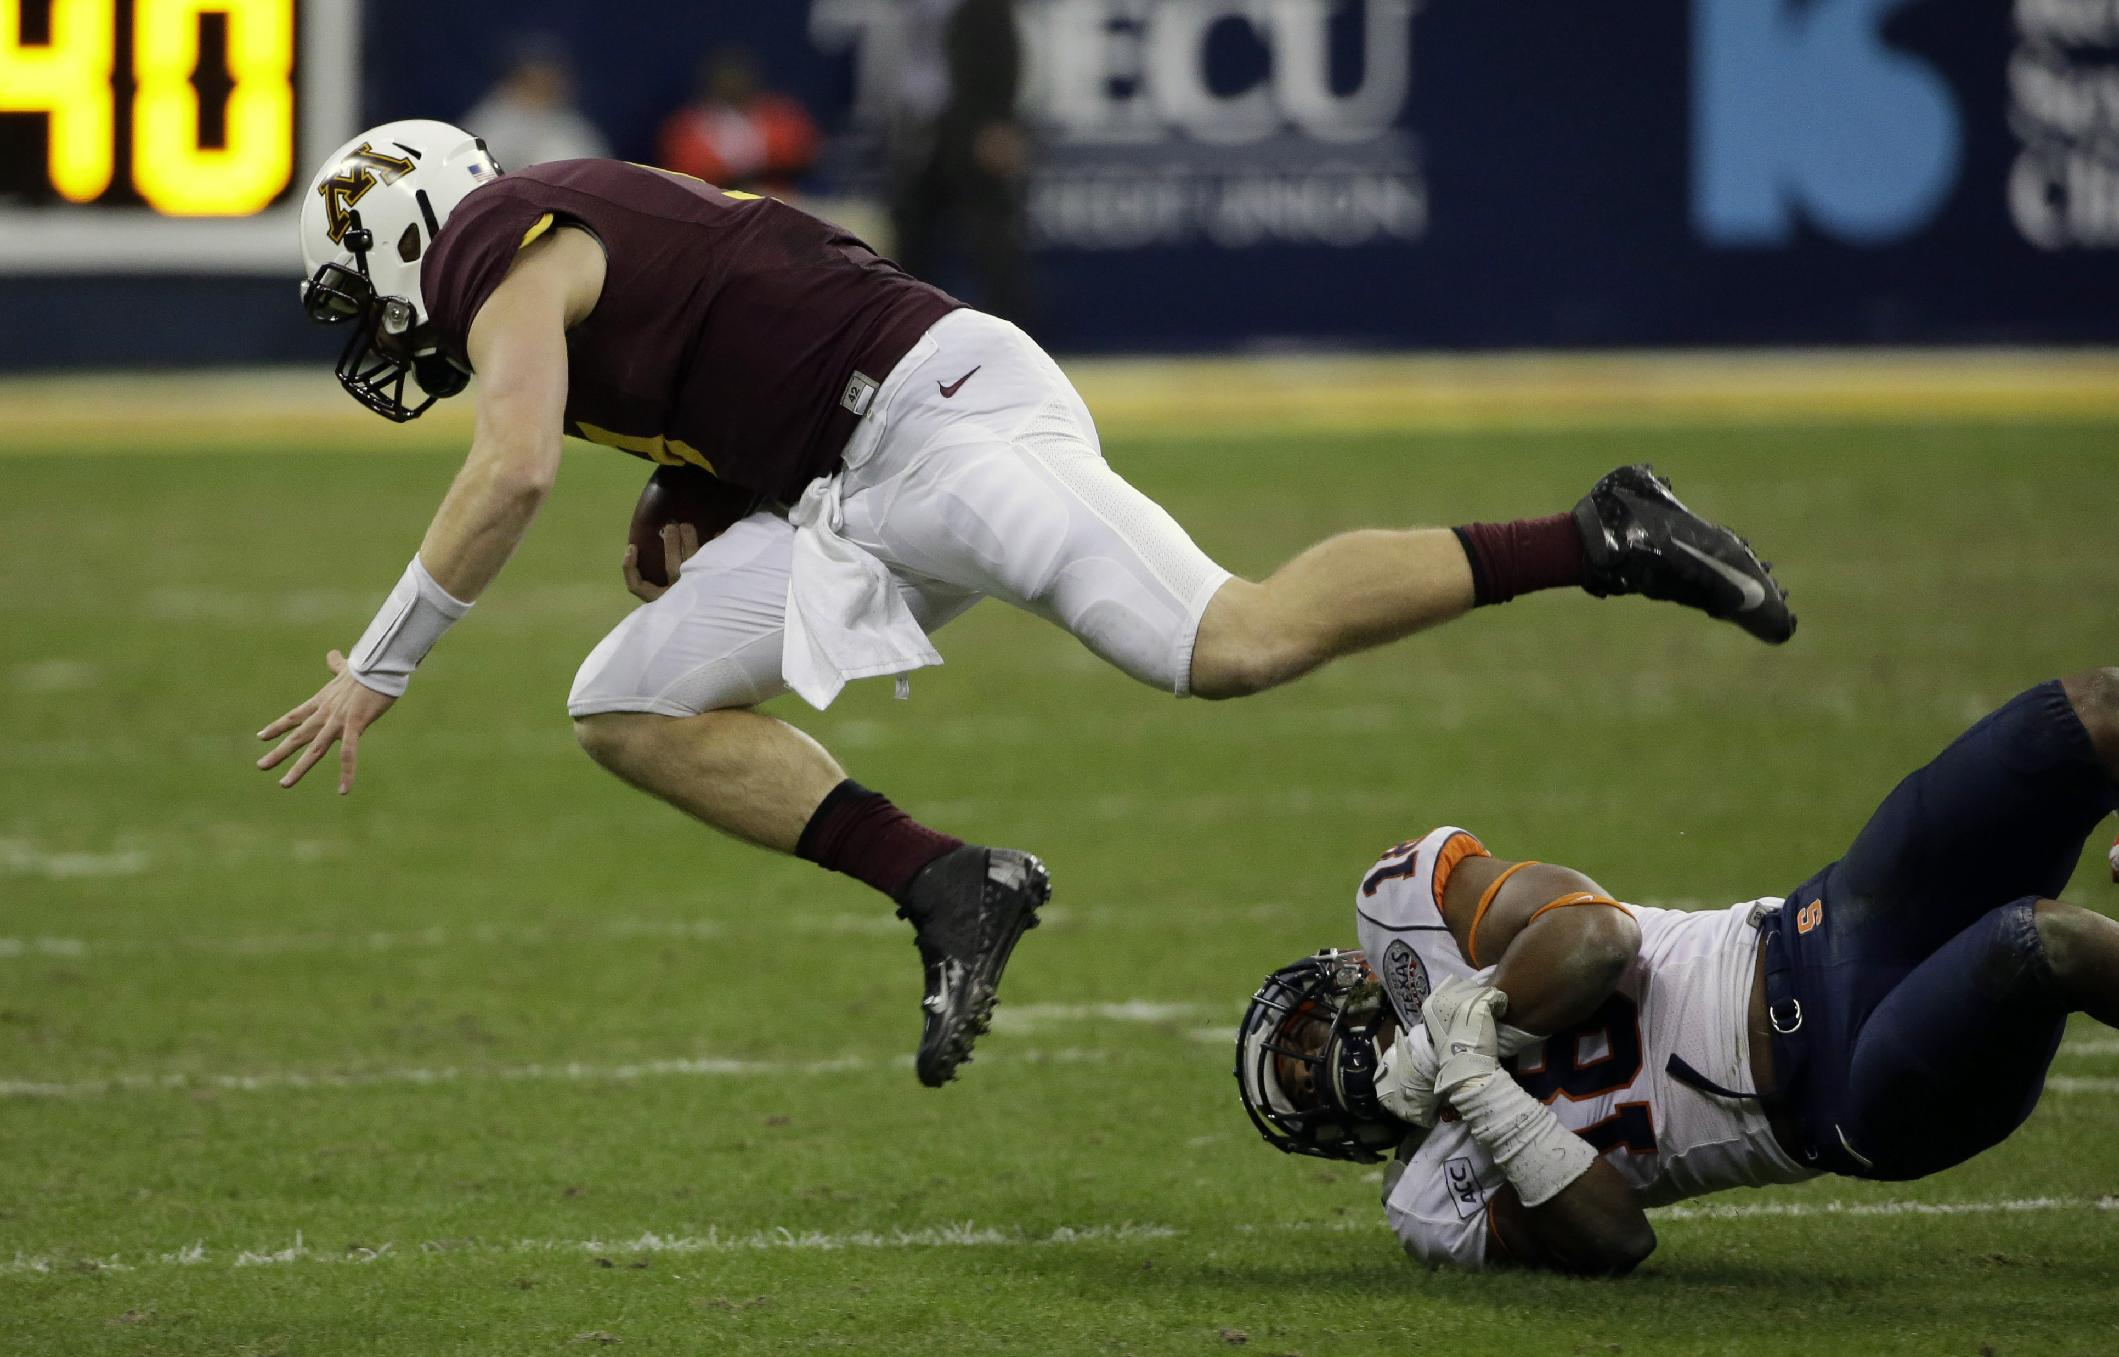 Minnesota quarterback Philip Nelson, left, is tripped by Syracuse defensive back Darius Kelly (18) during the third quarter of the Texas Bowl NCAA college football game on Friday, Dec. 27, 2013, in Houston. Syracuse won 21-17